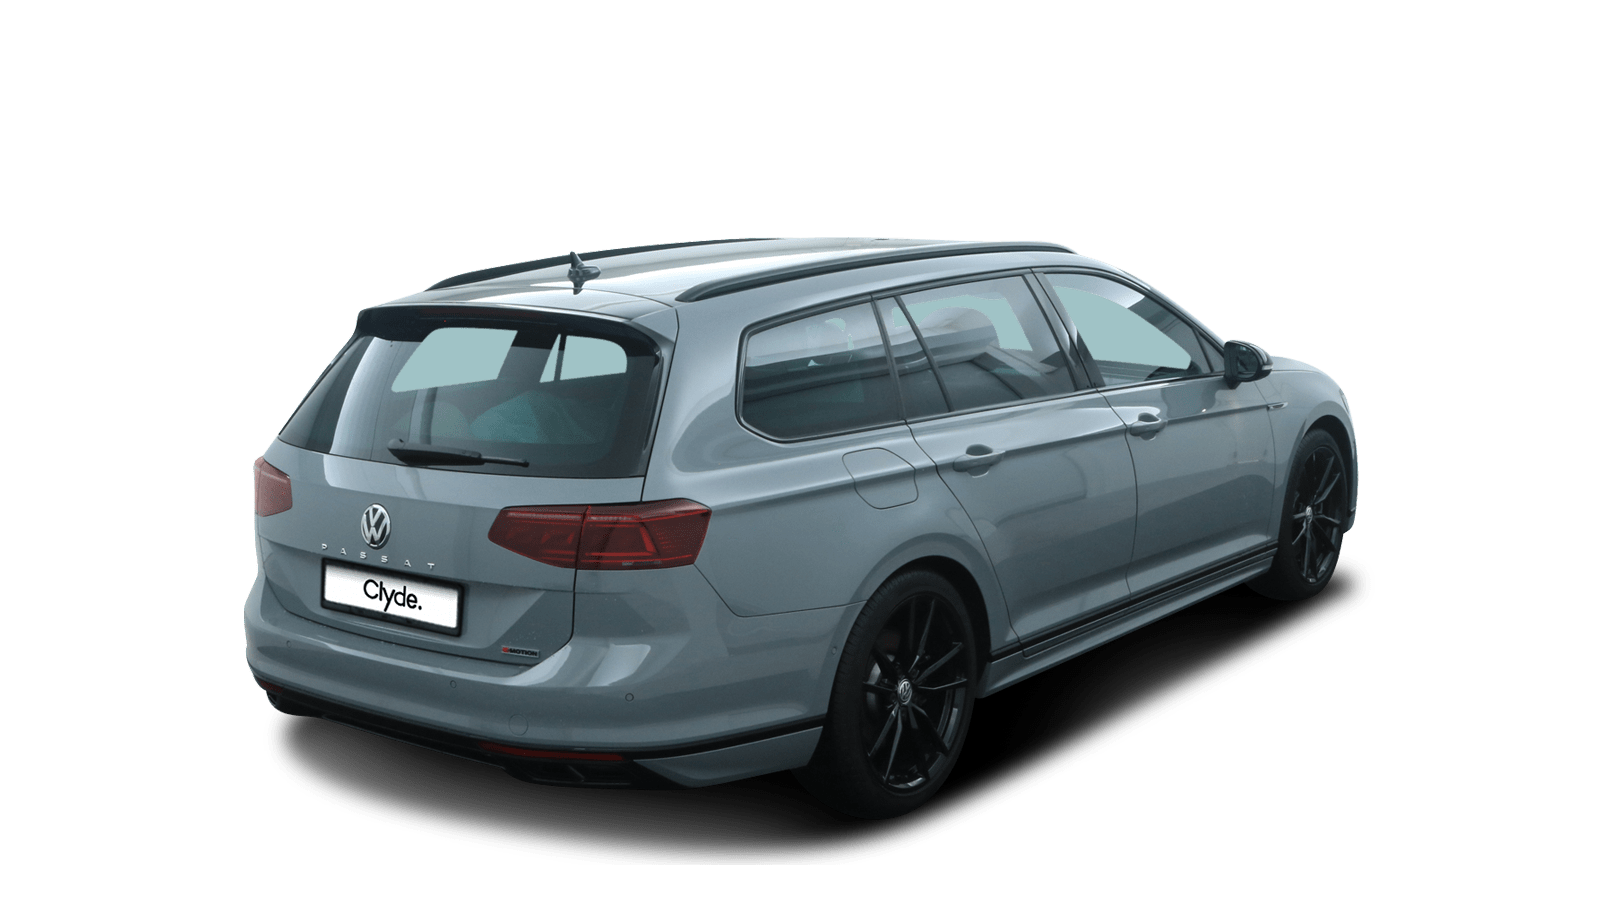 VW Passat Variant Grey back - Clyde car subscription